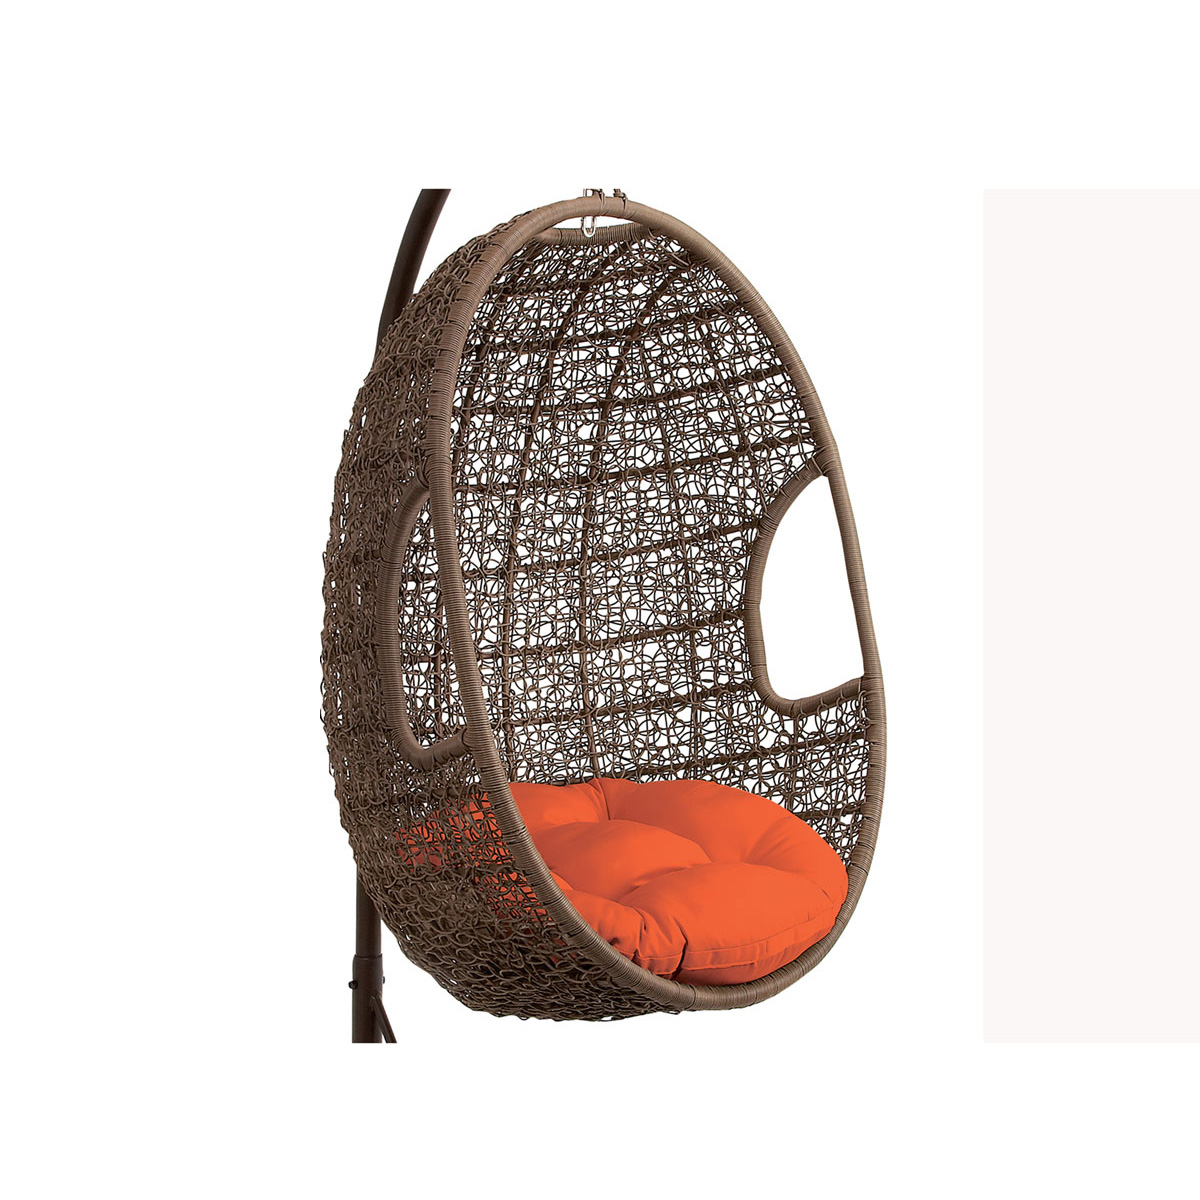 Hanover Outdoor Wicker Rattan Hanging Egg Chair Swing With